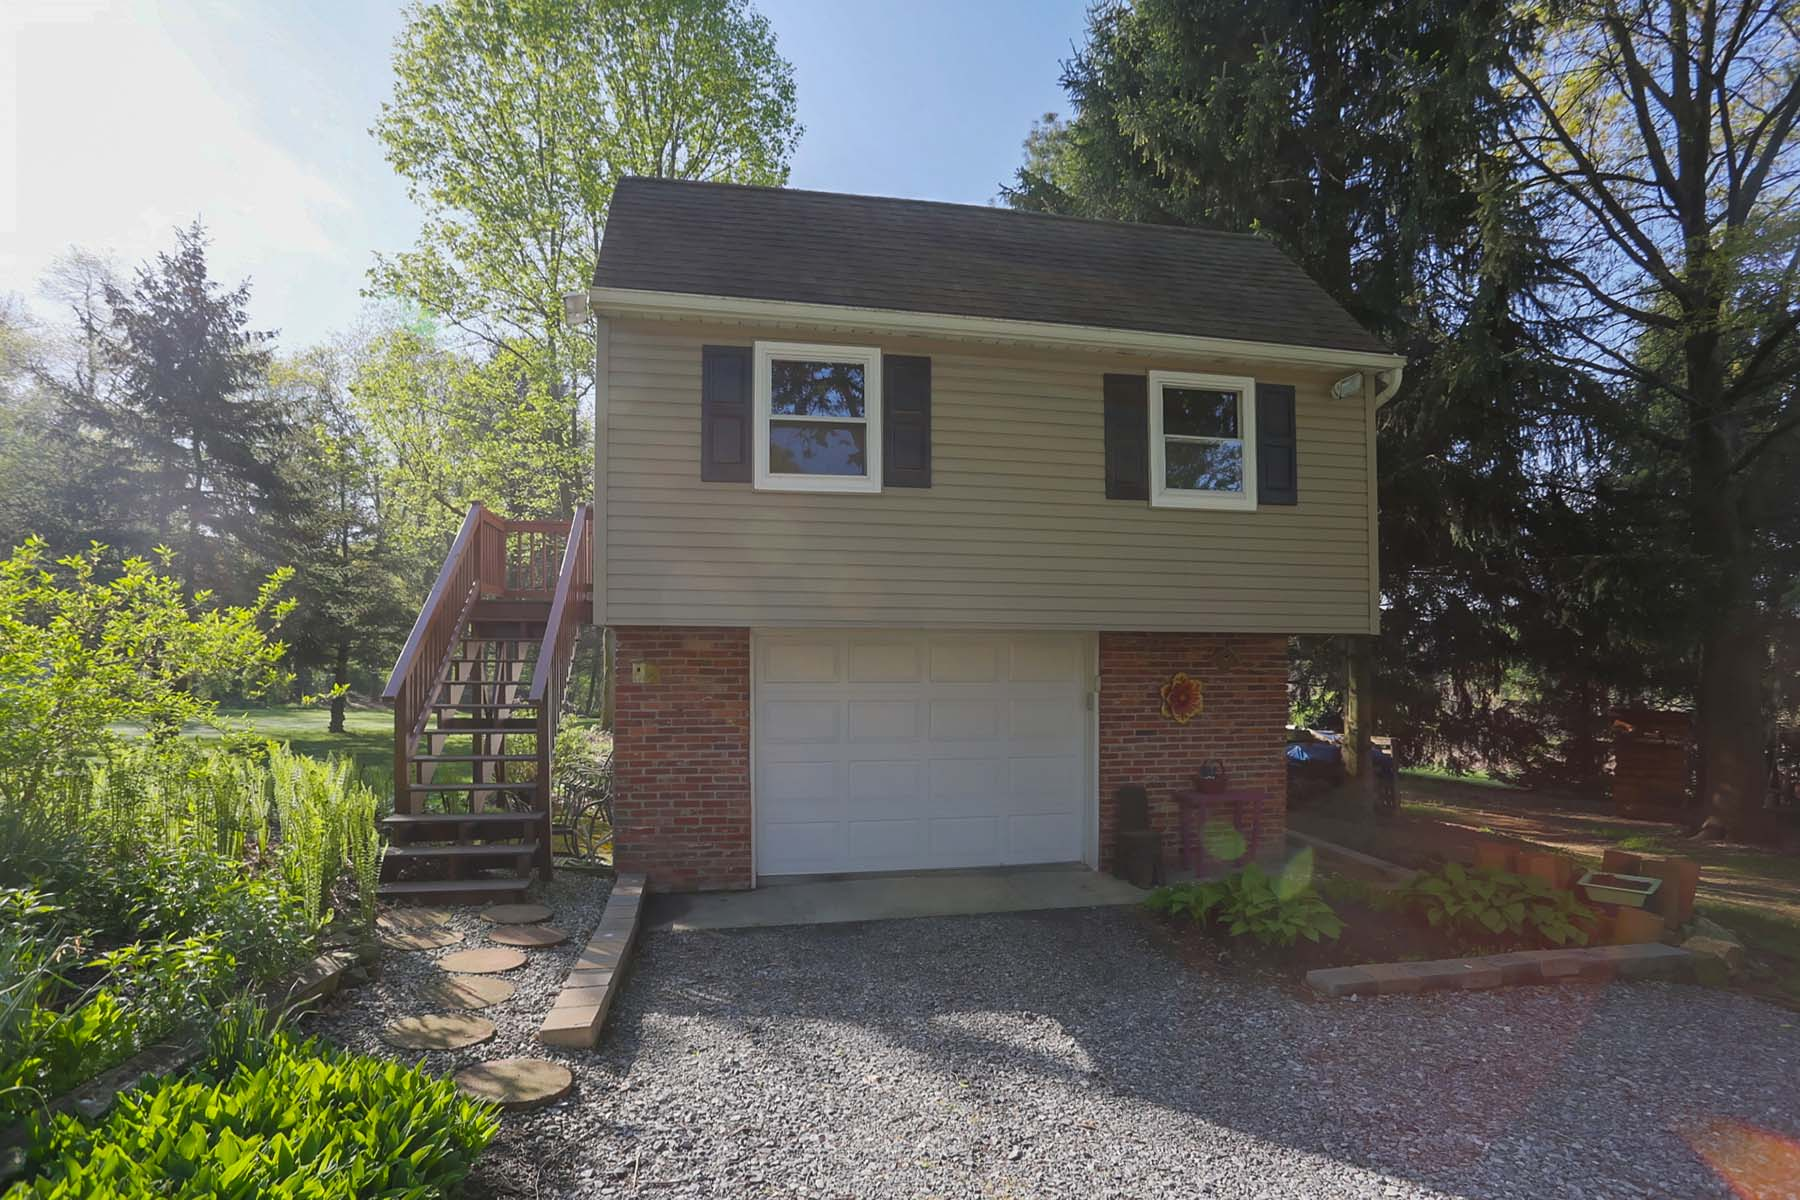 Additional photo for property listing at 641 Bedington Circle  Manheim, Pennsylvania 17545 United States